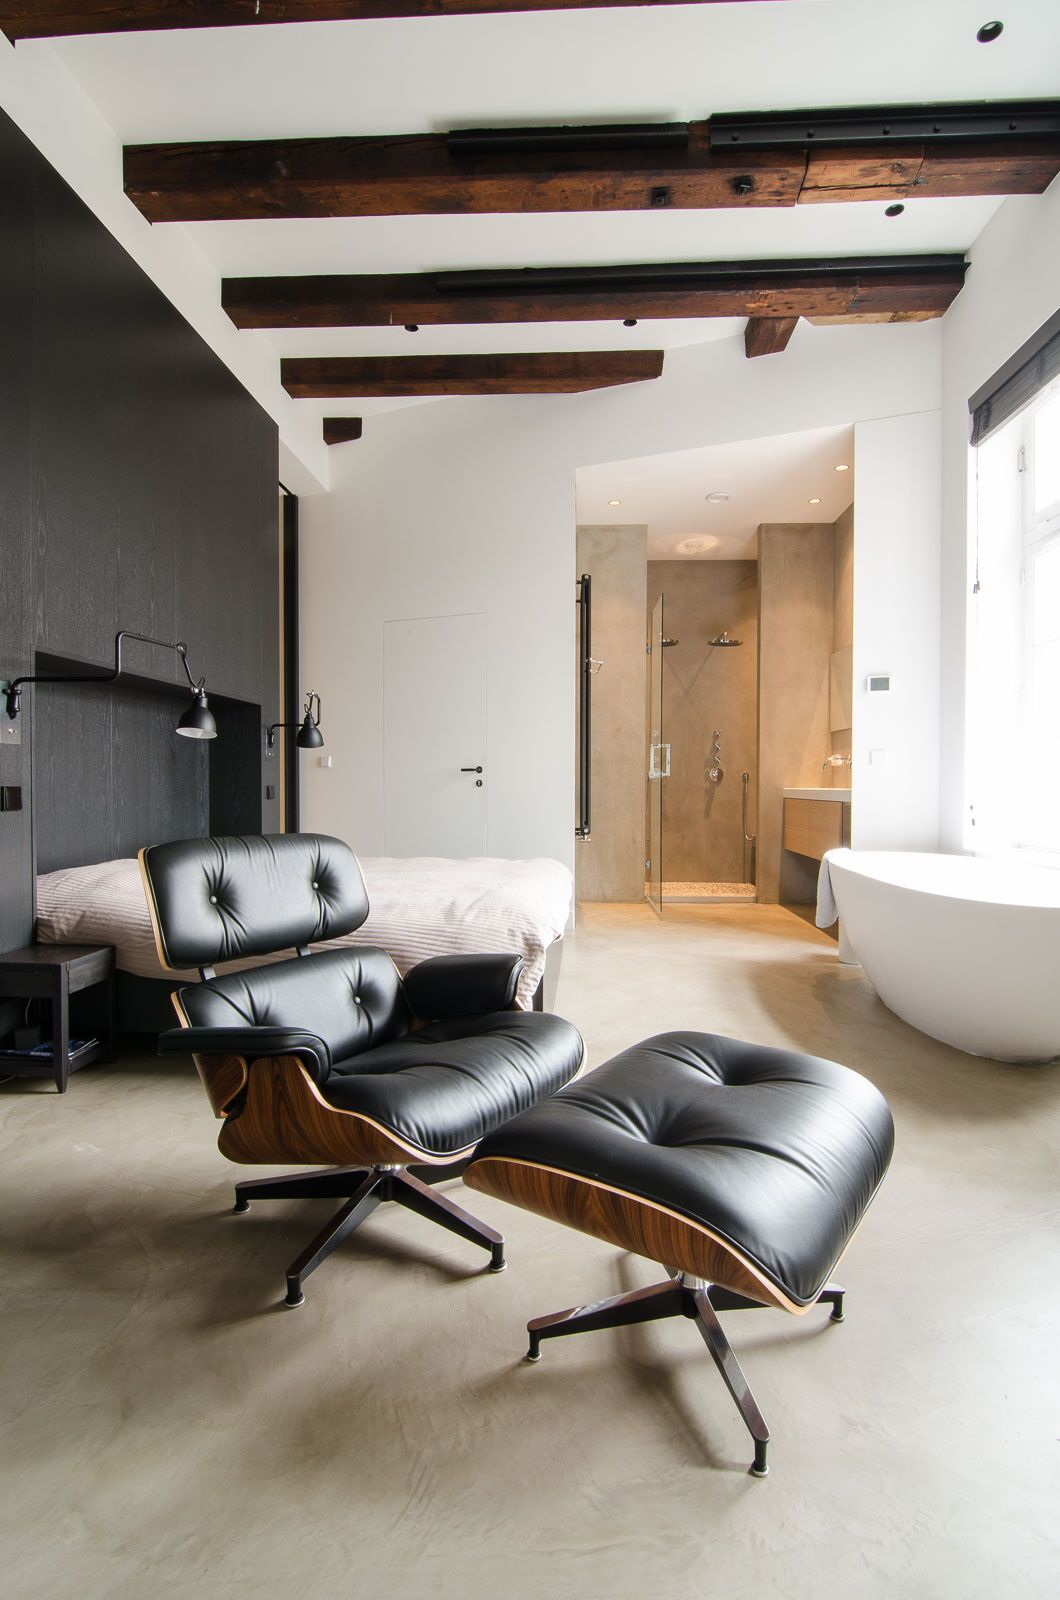 old sugar factory was converted into contemporary loft 13 Old Sugar Factory Was Converted Into Contemporary Loft